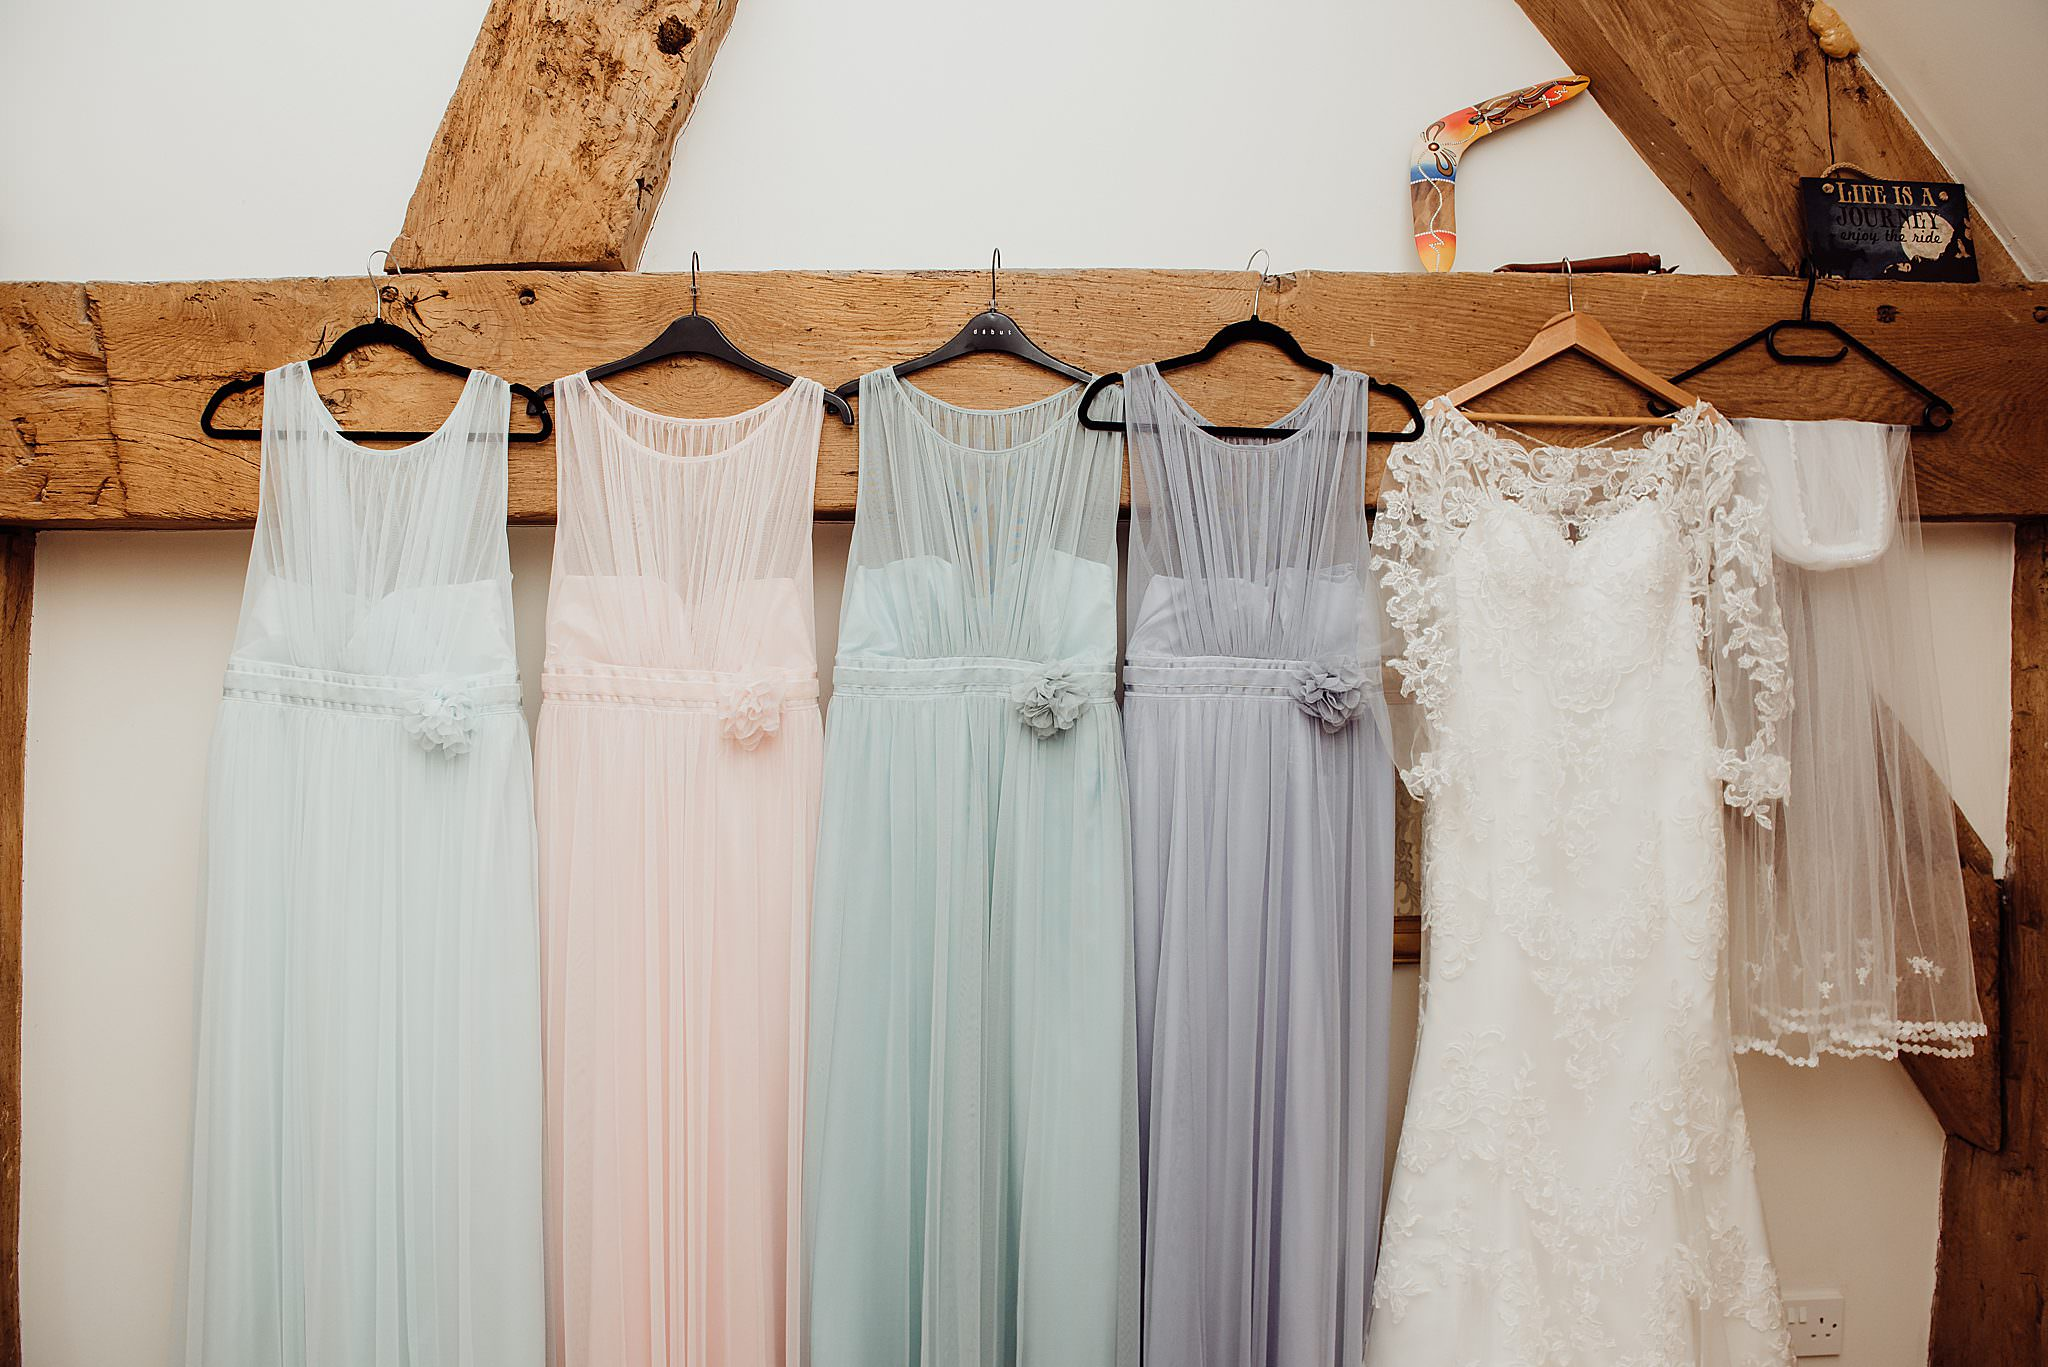 Wedding dress and multi coloured bridesmaids dresses hanging on a wooden beam